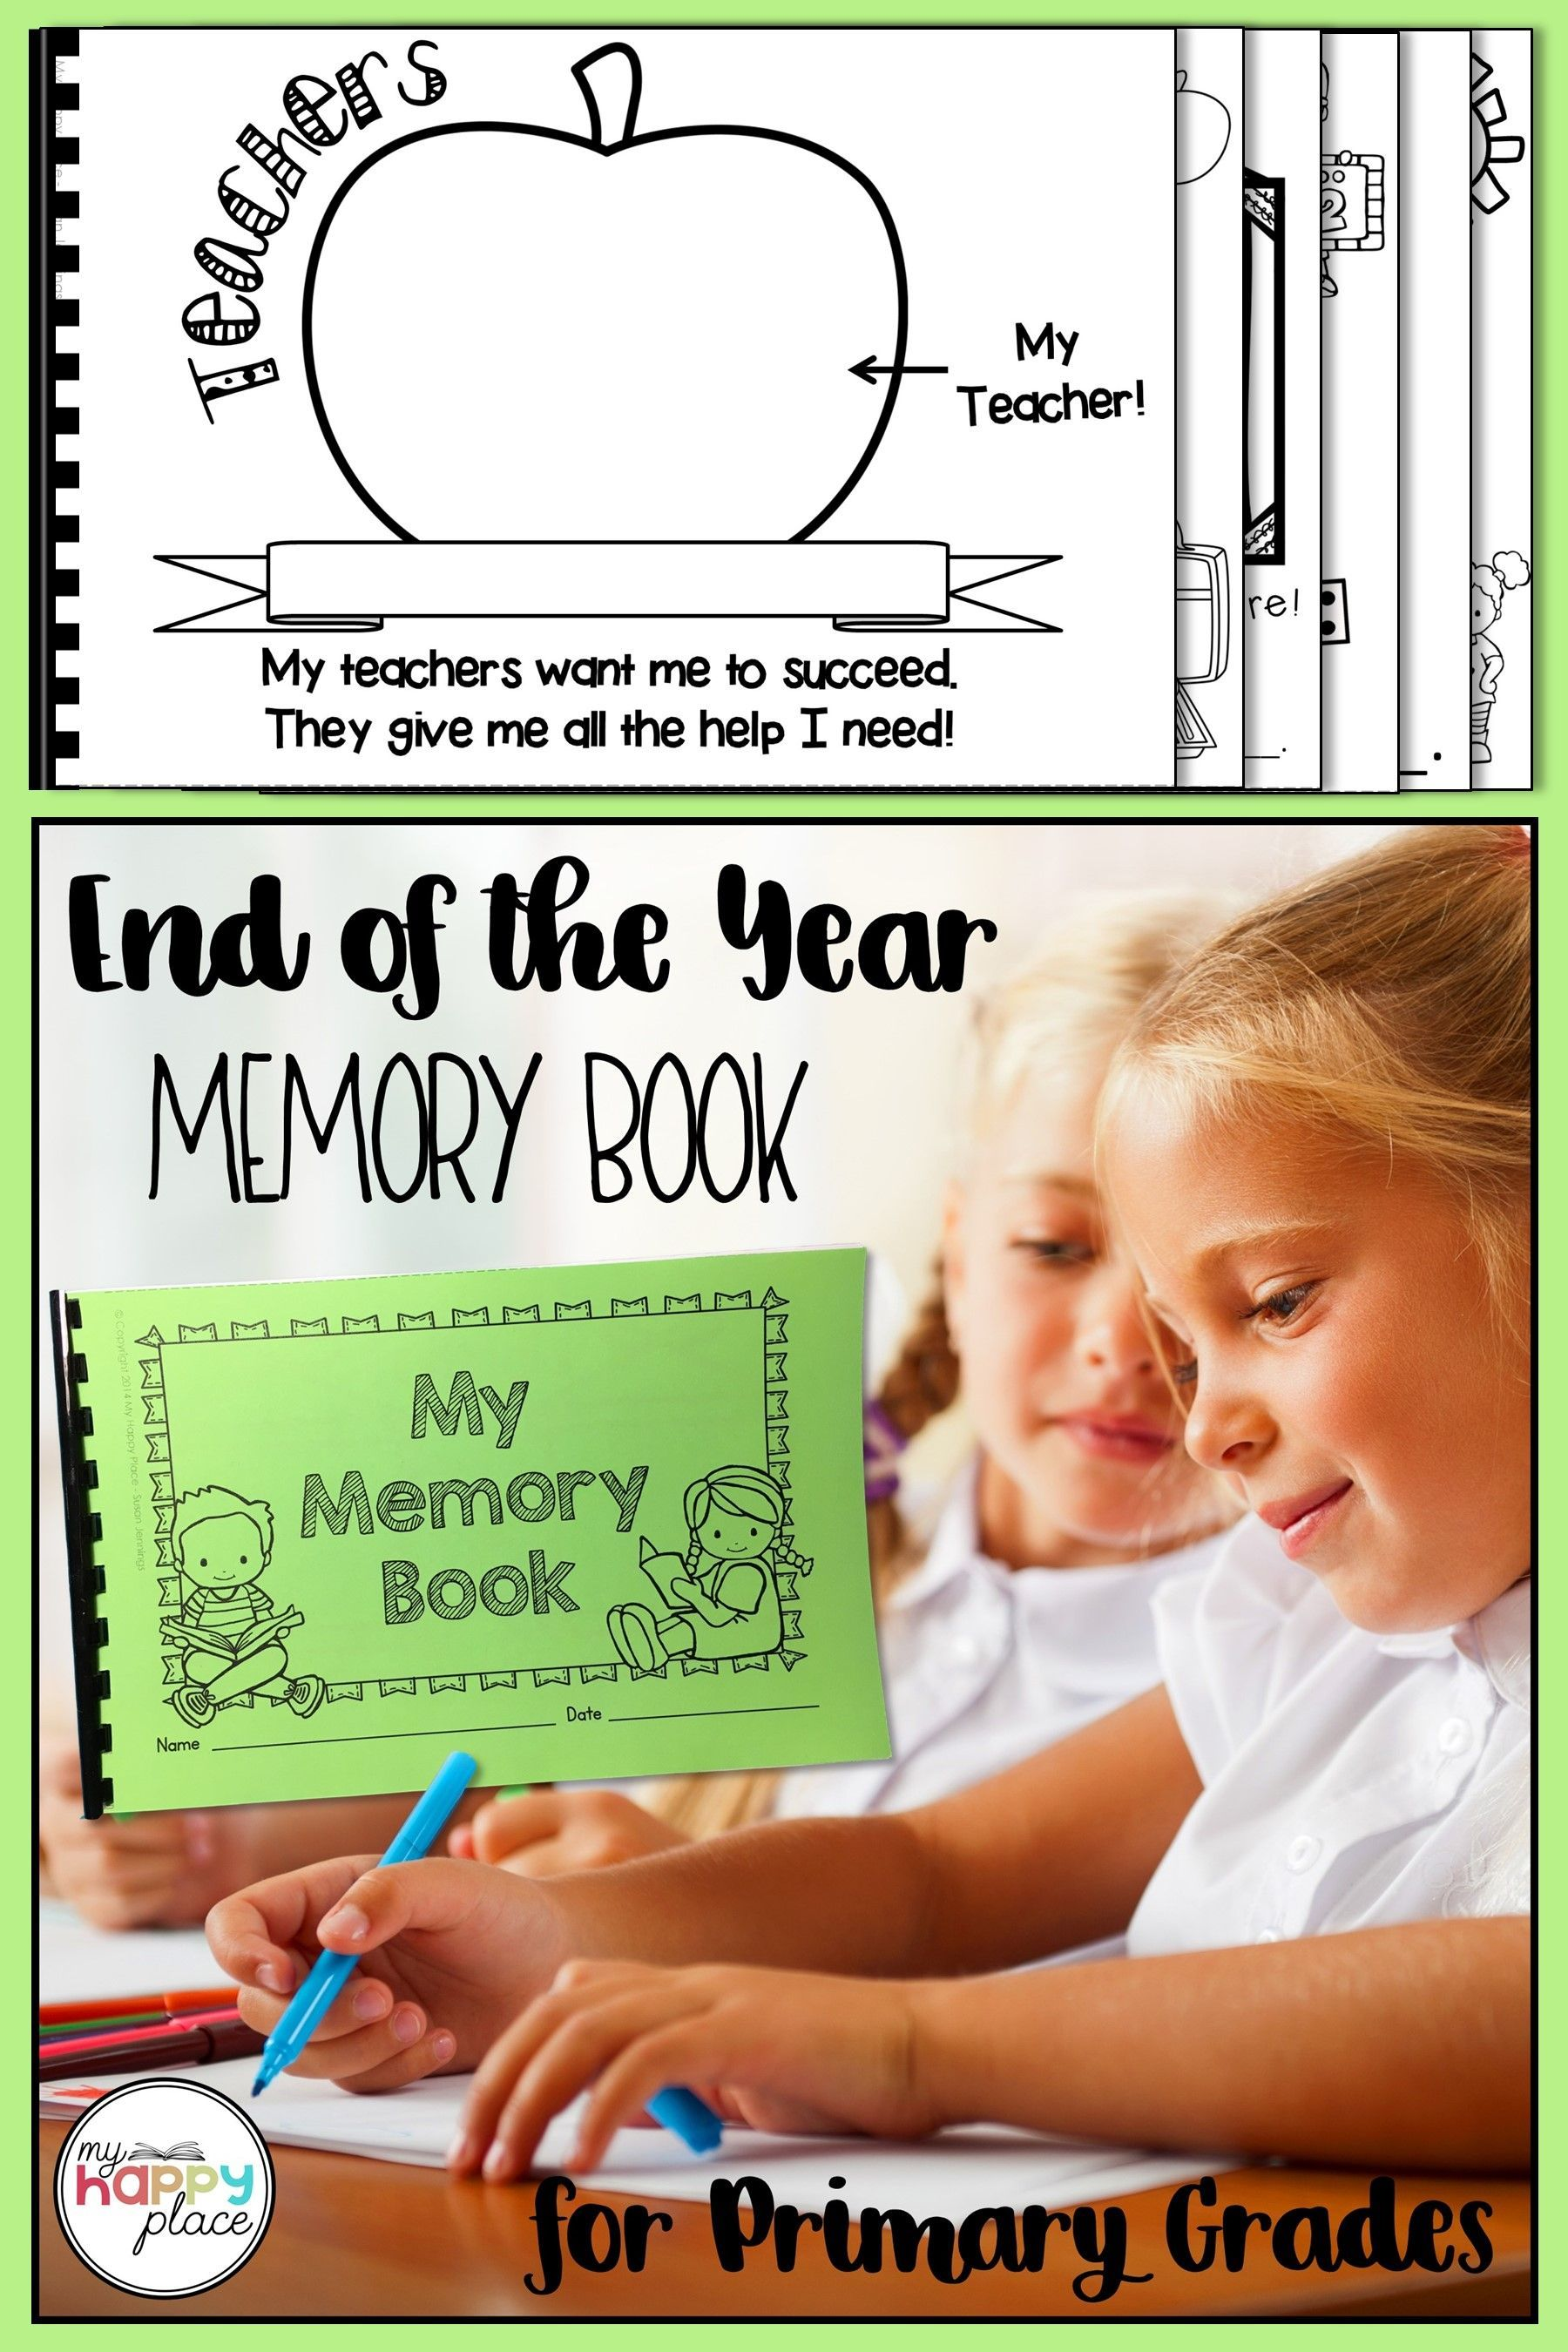 This Sweet Rhyming Memory Book Prints Two To A Page To